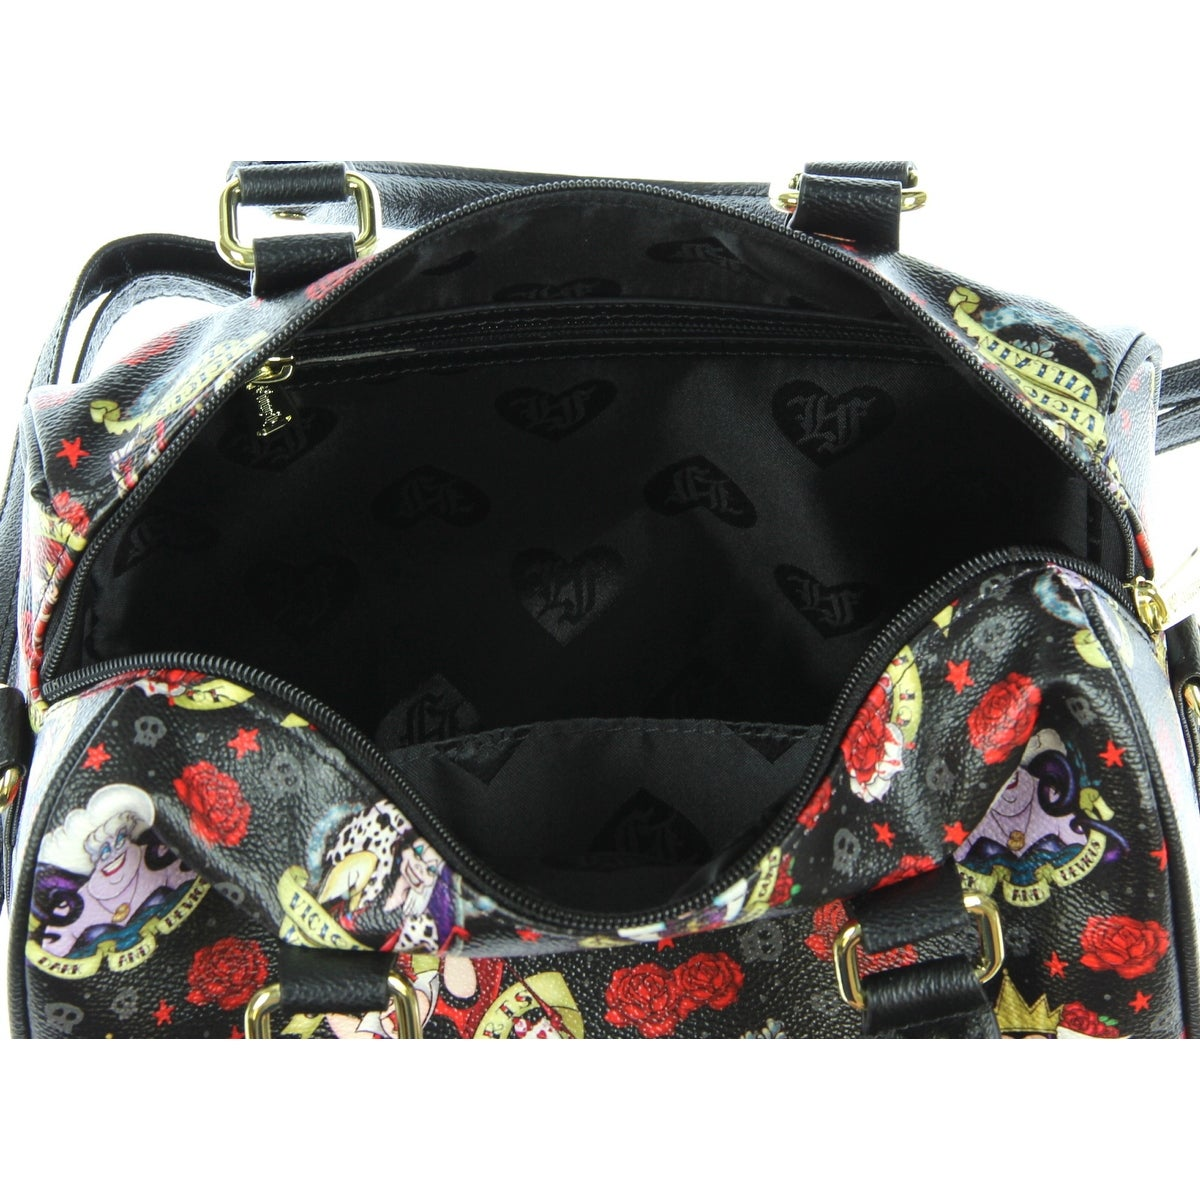 1efd844c95f Shop Loungefly Disney Villains Roses Tattoo All Over Print Faux Leather Bag  - M - Free Shipping Today - Overstock - 17161573